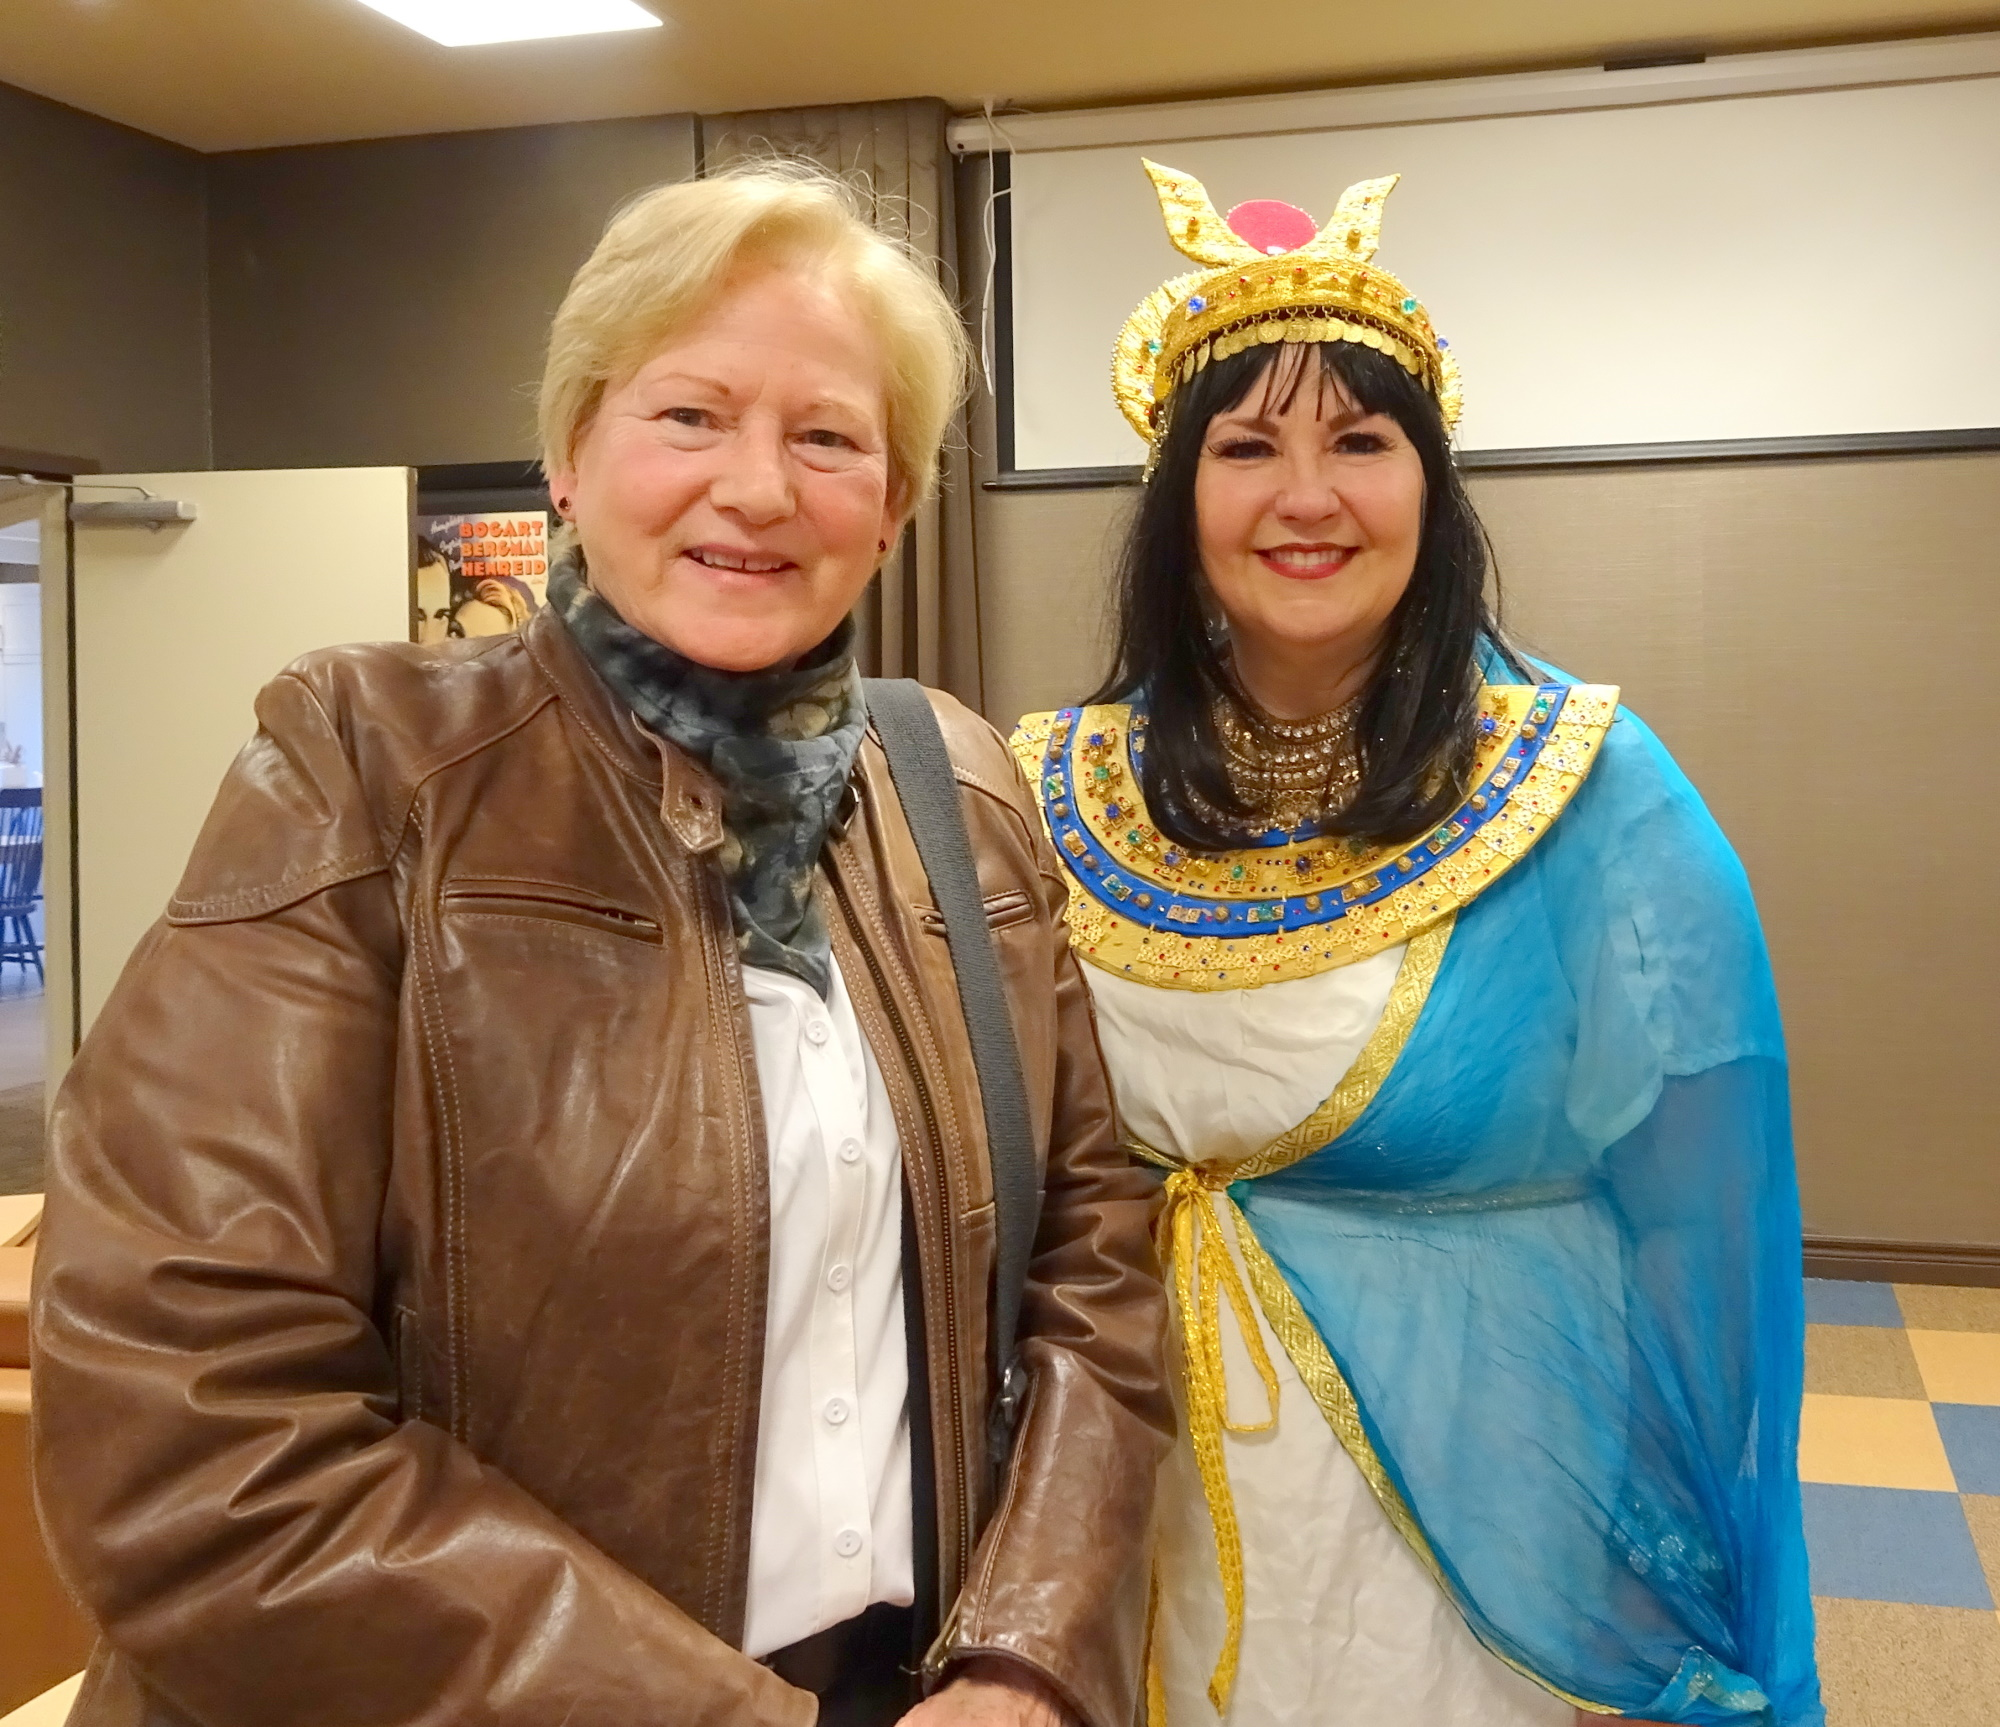 Attendee Judy with Lianne Harris, Ancient Egypt Presentation at VIVA 24 Feb 2020